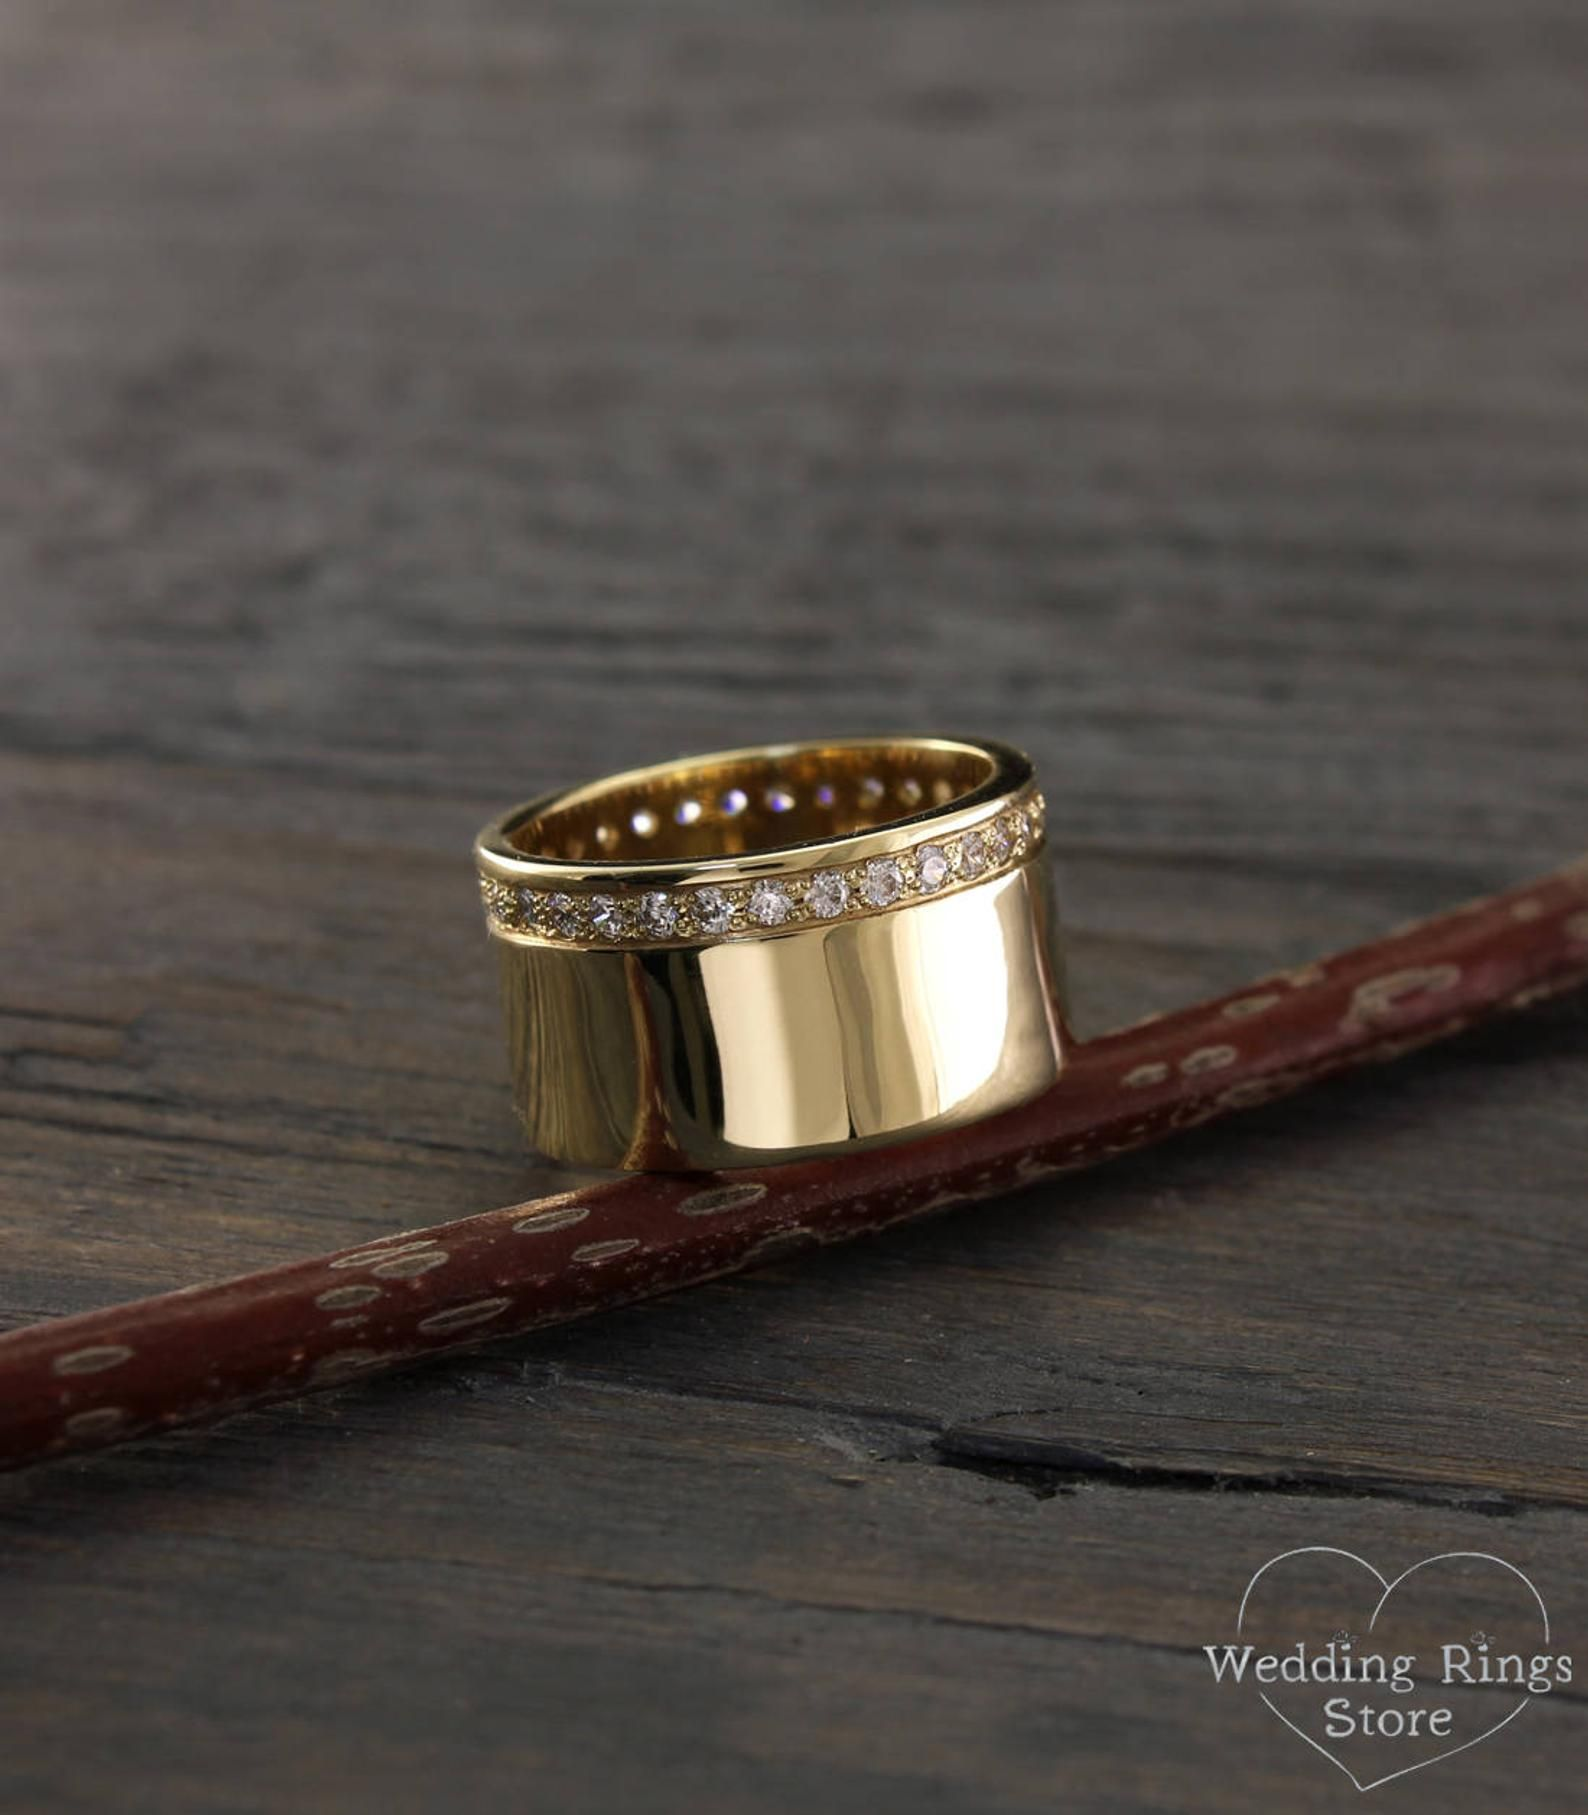 Traditional wide eternity woman's wedding band with diamonds made in 14k solid yellow gold